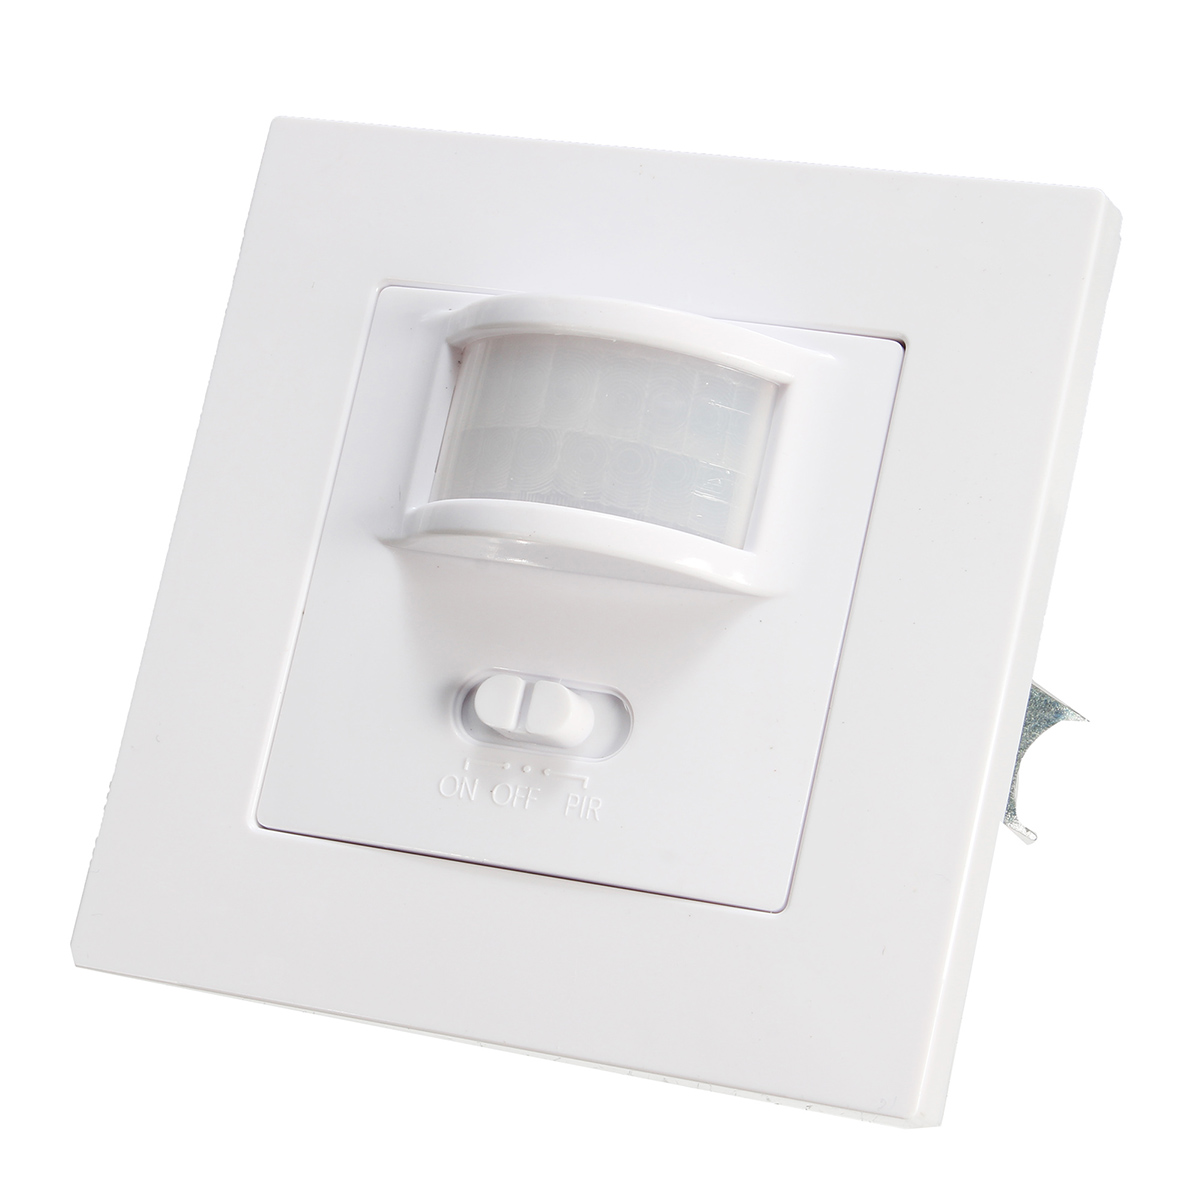 140 Degree Infrared Pir Motion Sensor Recessed Wall Lamp Bulb Led Have A 110v Switch To Replace Regular Light 4a2327aa 3128 4c47 A58a Daec7f77216f